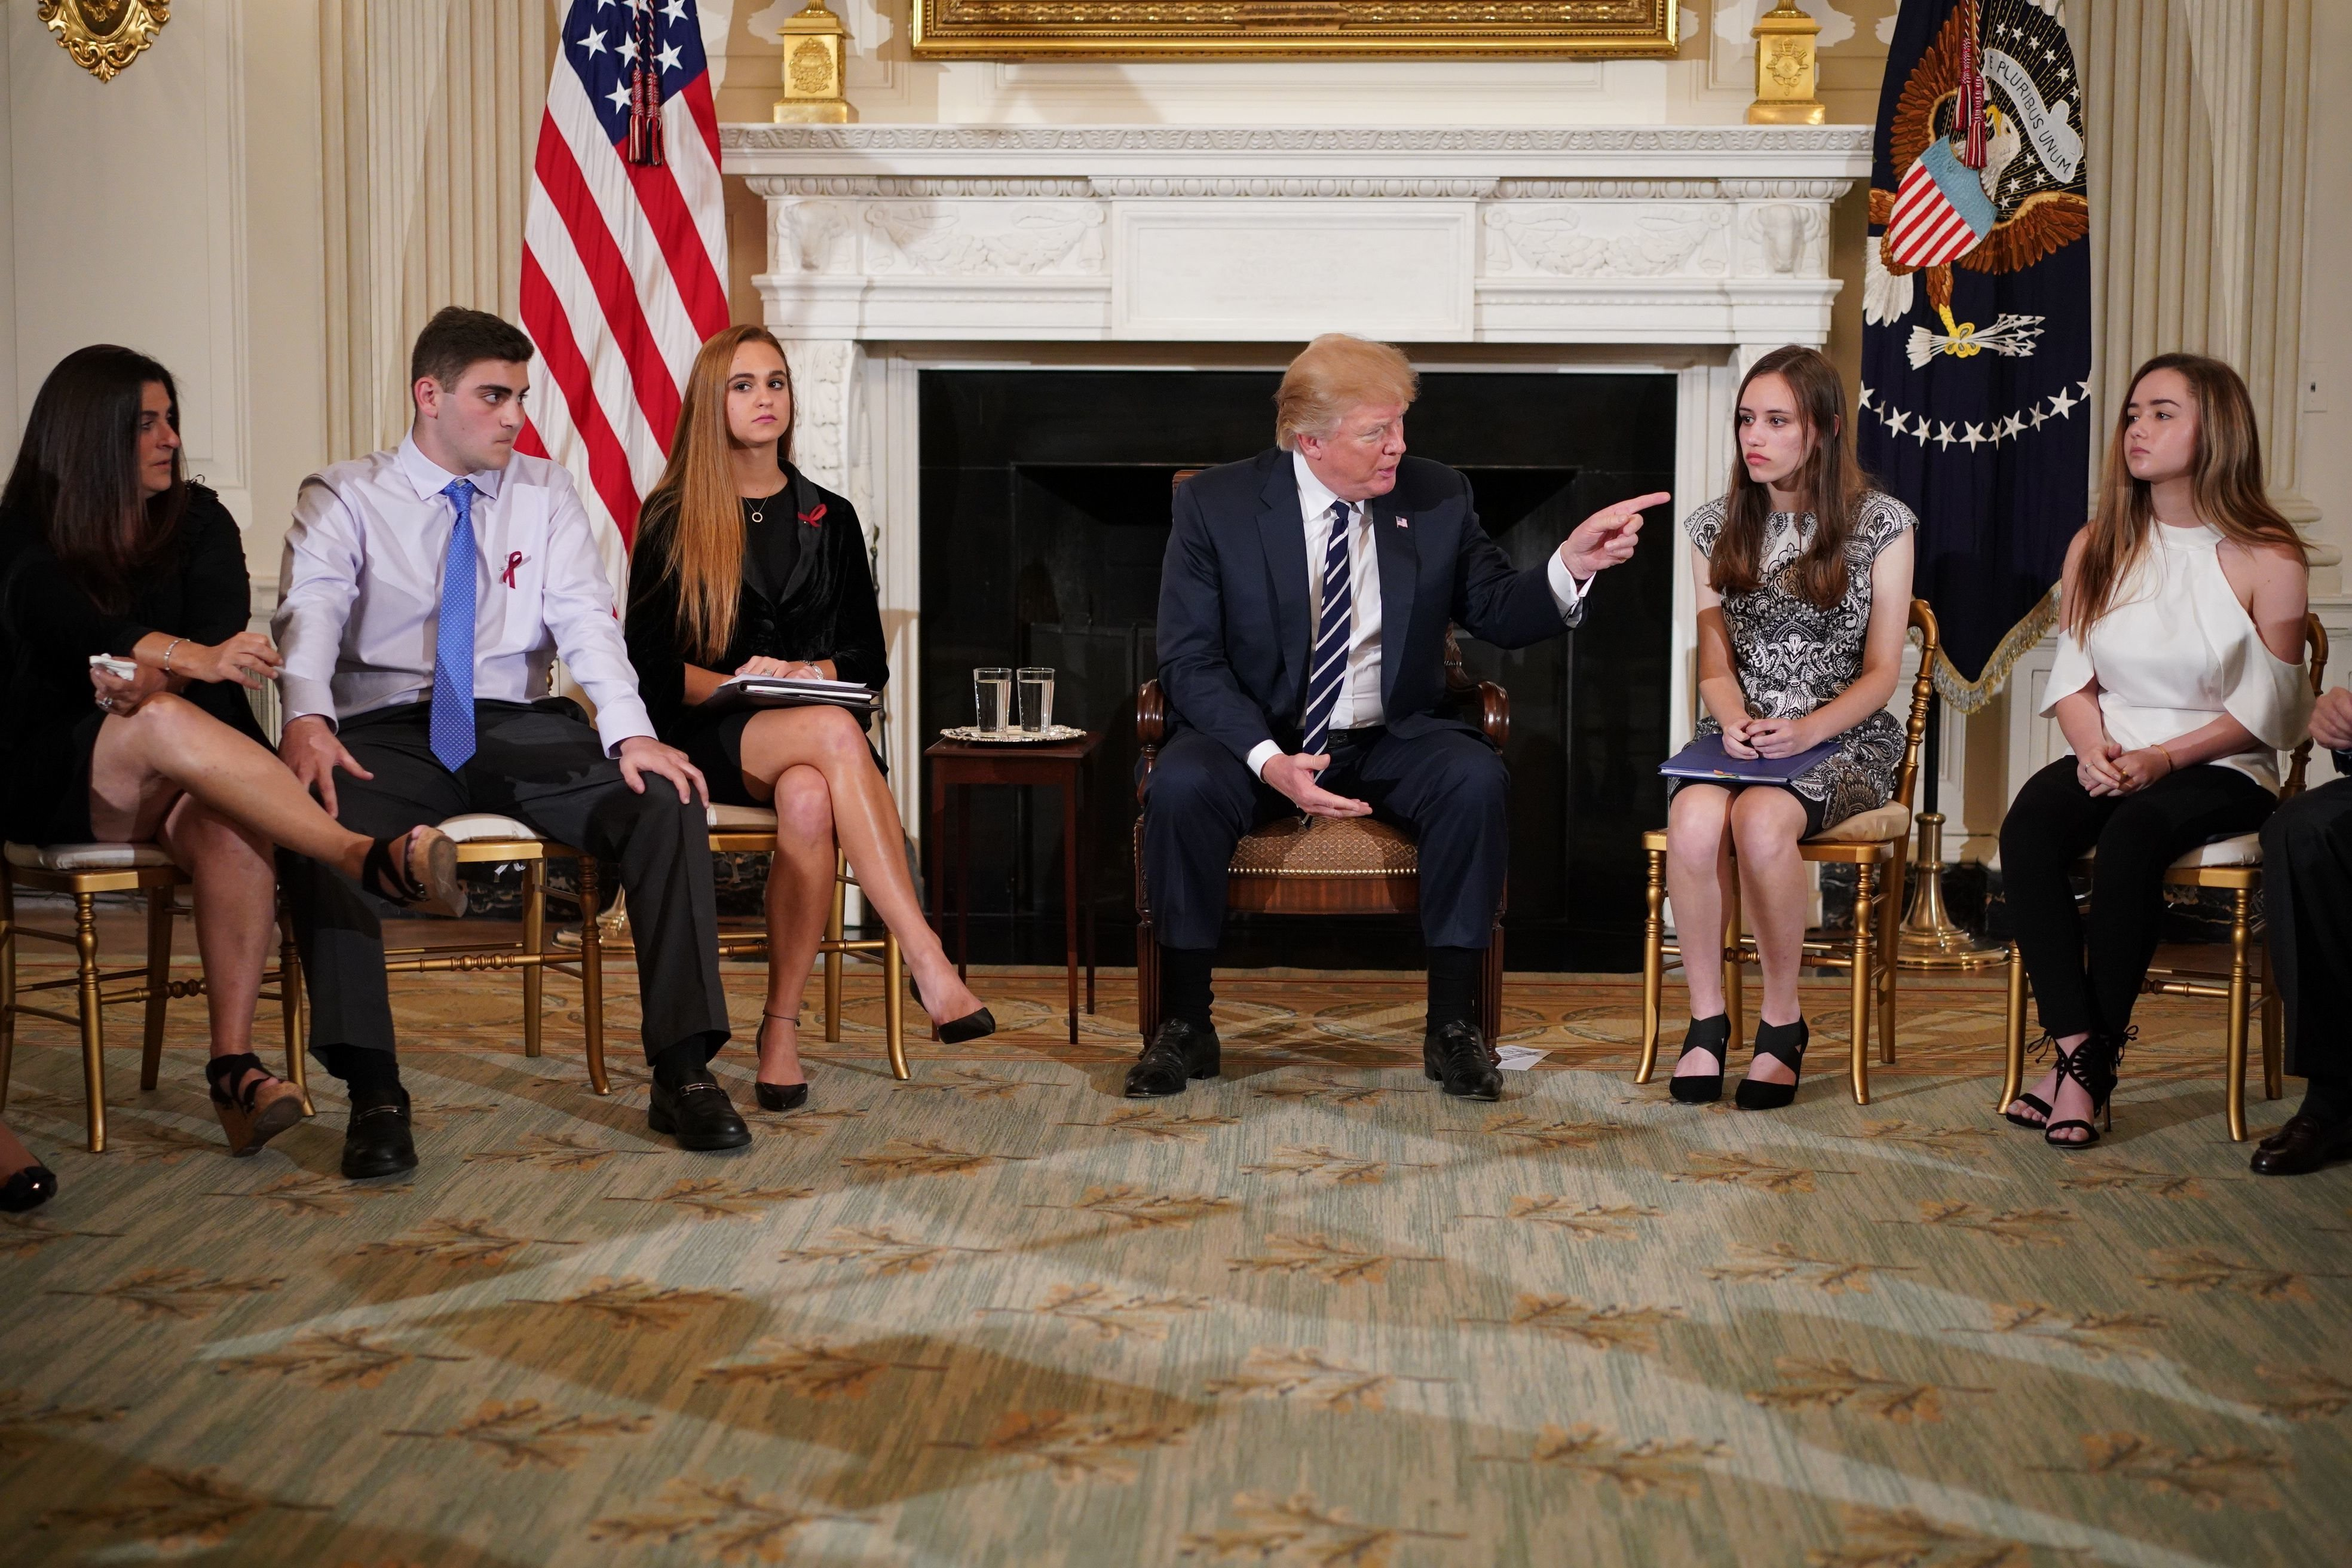 Tearful Scenes As Donald Trump Talks To Florida Shooting Students At White House